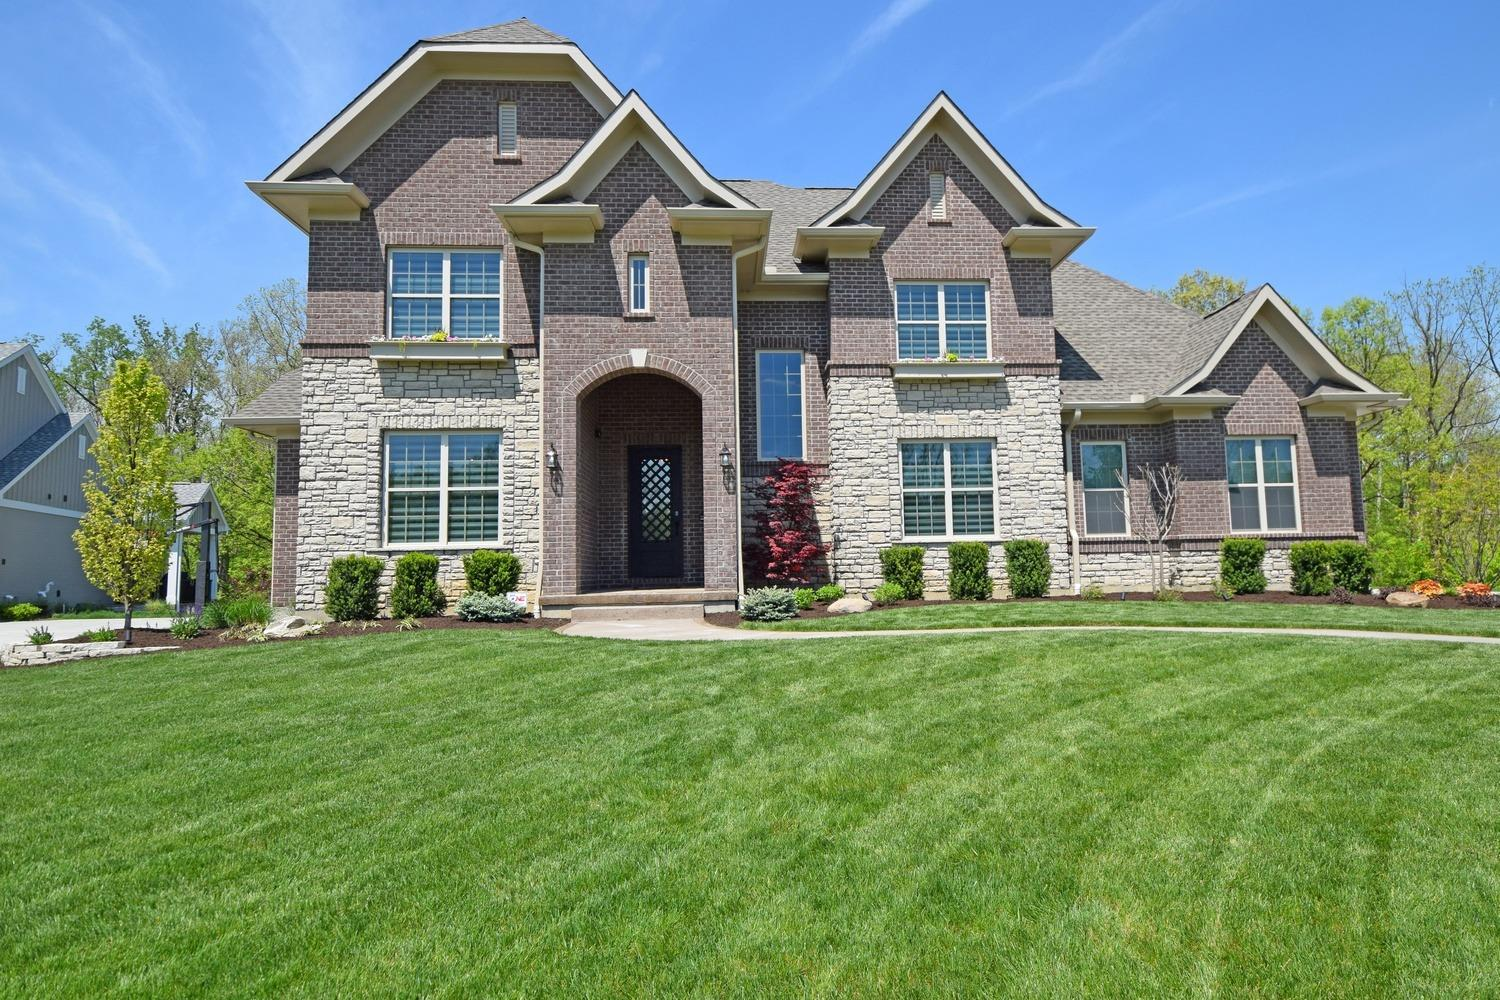 Property for sale at 5232 Sycamore View Drive, Mason,  Ohio 45040